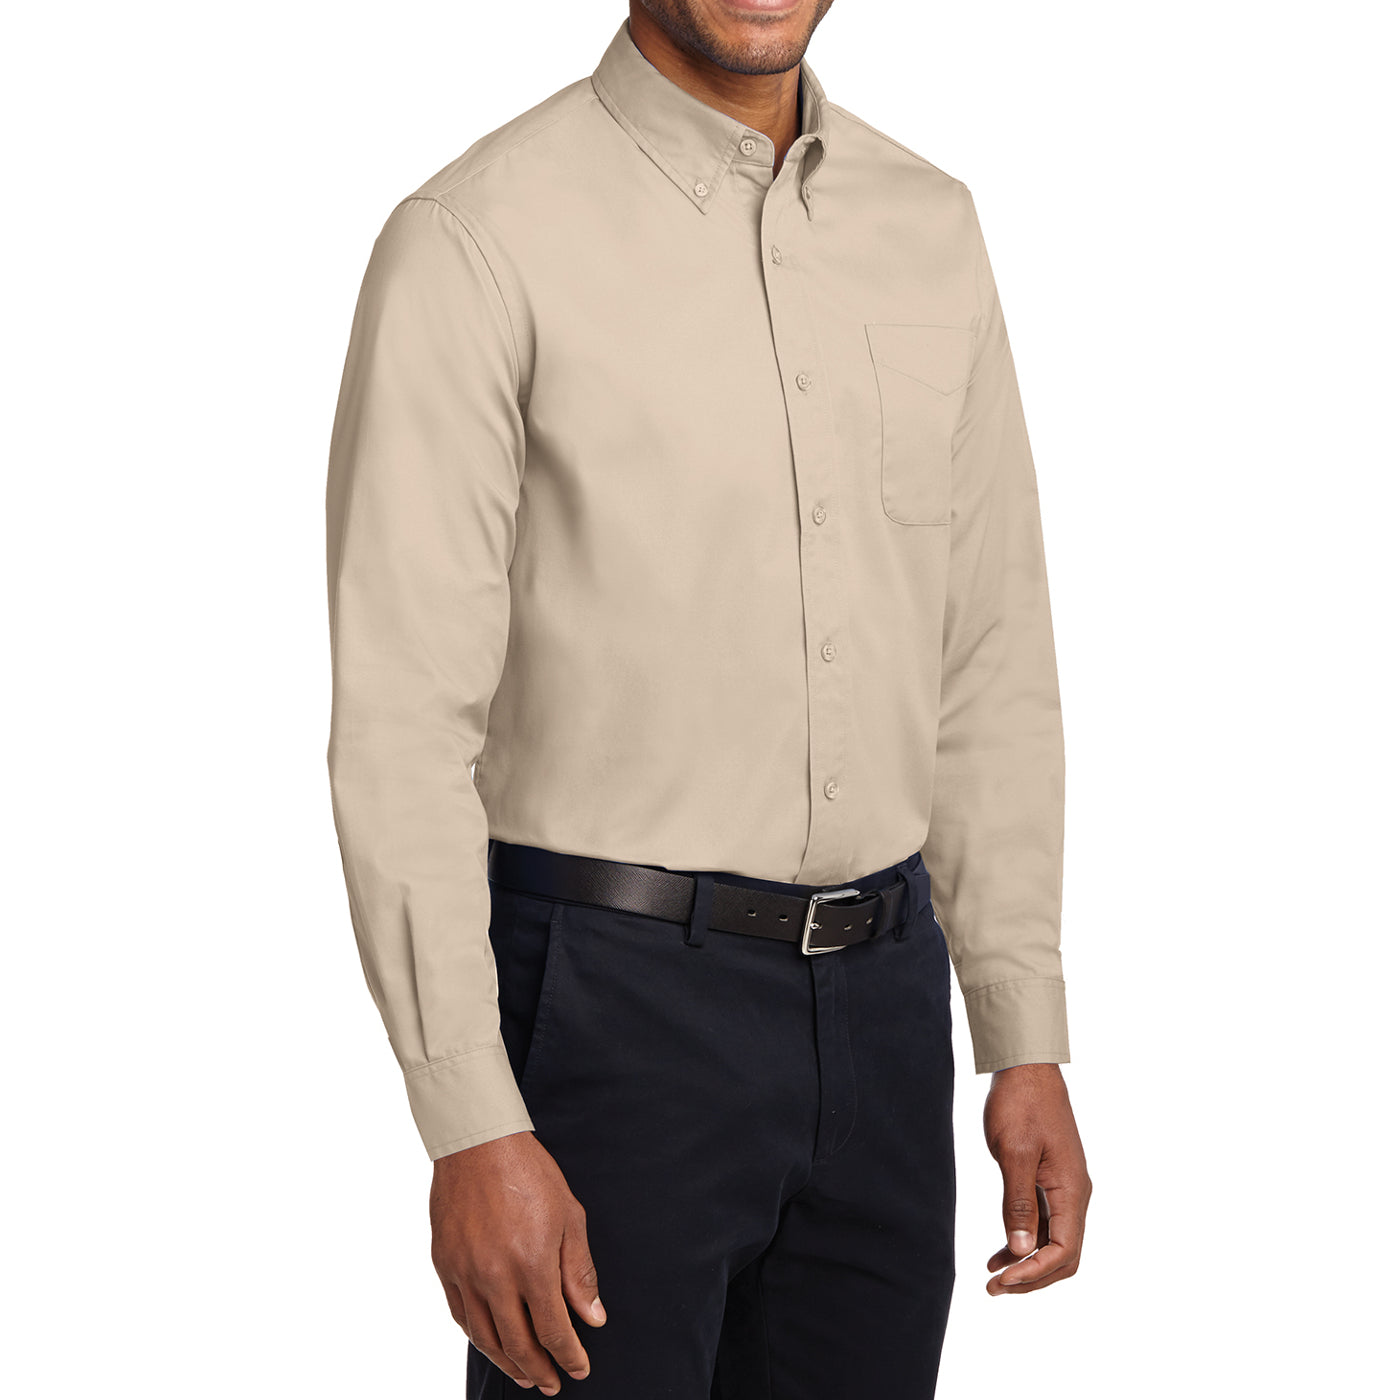 Men's Long Sleeve Easy Care Shirt - Stone - Side